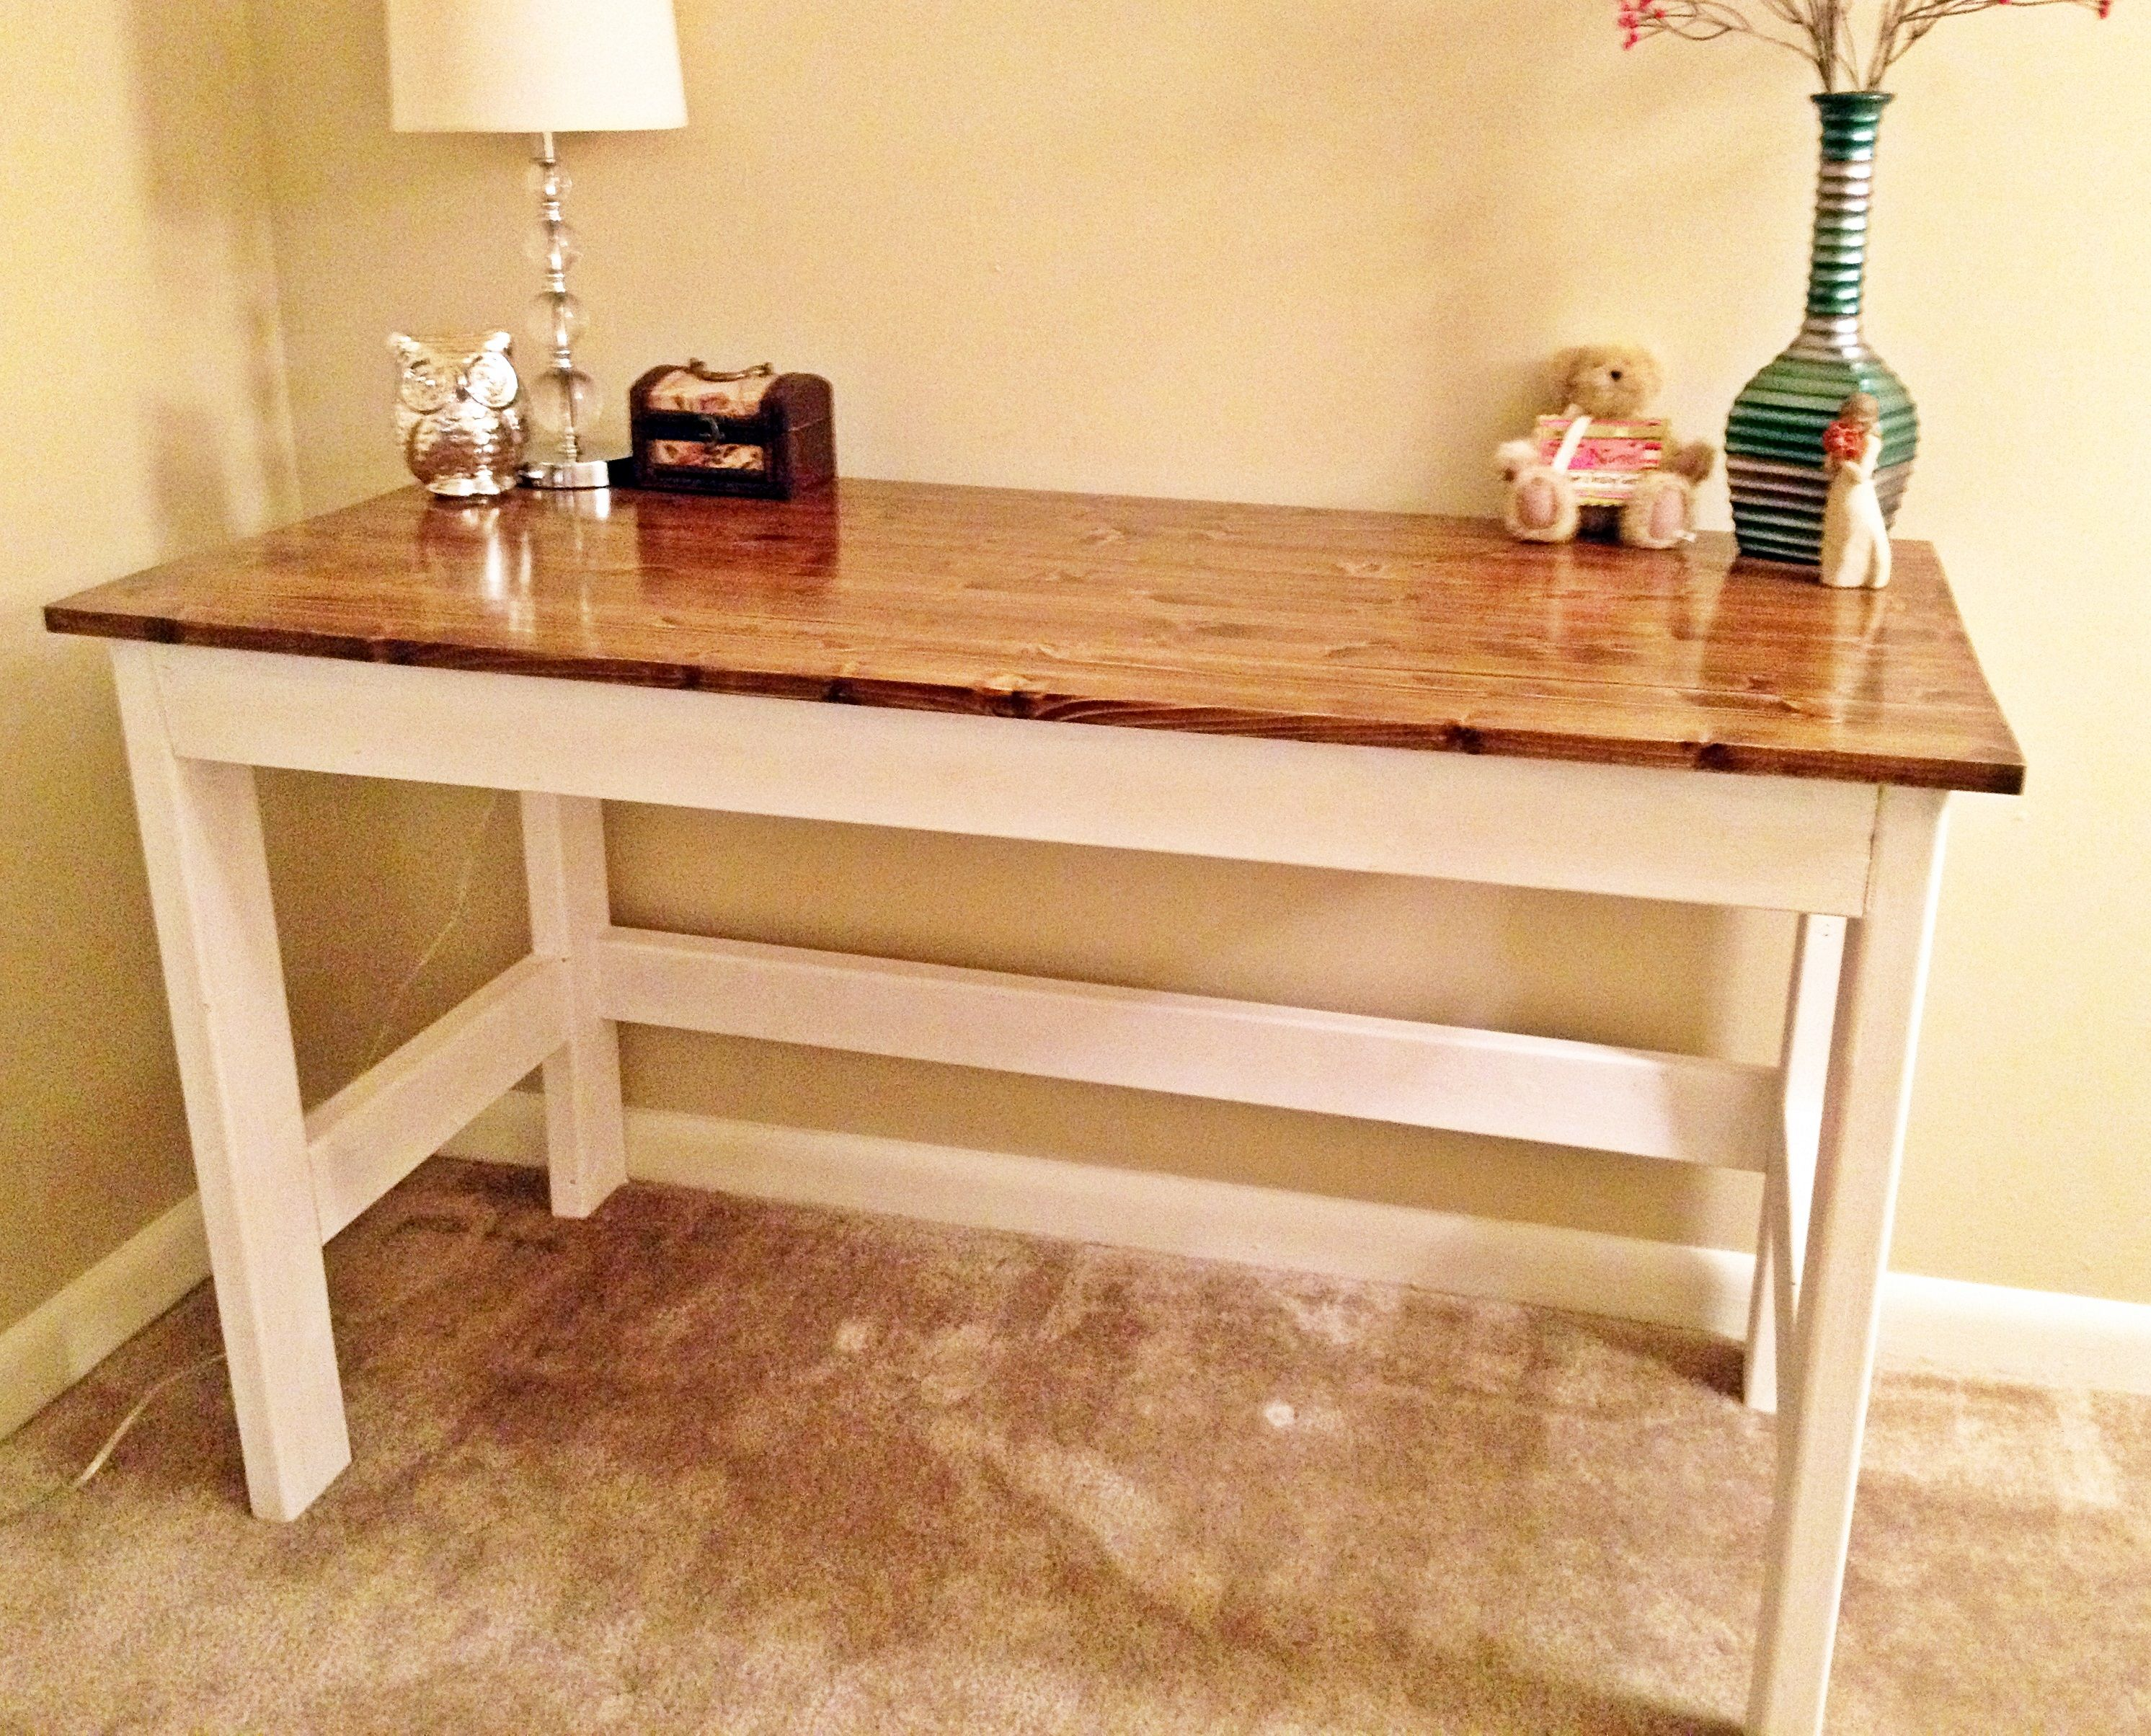 Country desk do it yourself home projects from ana white office country desk diy projects solutioingenieria Image collections